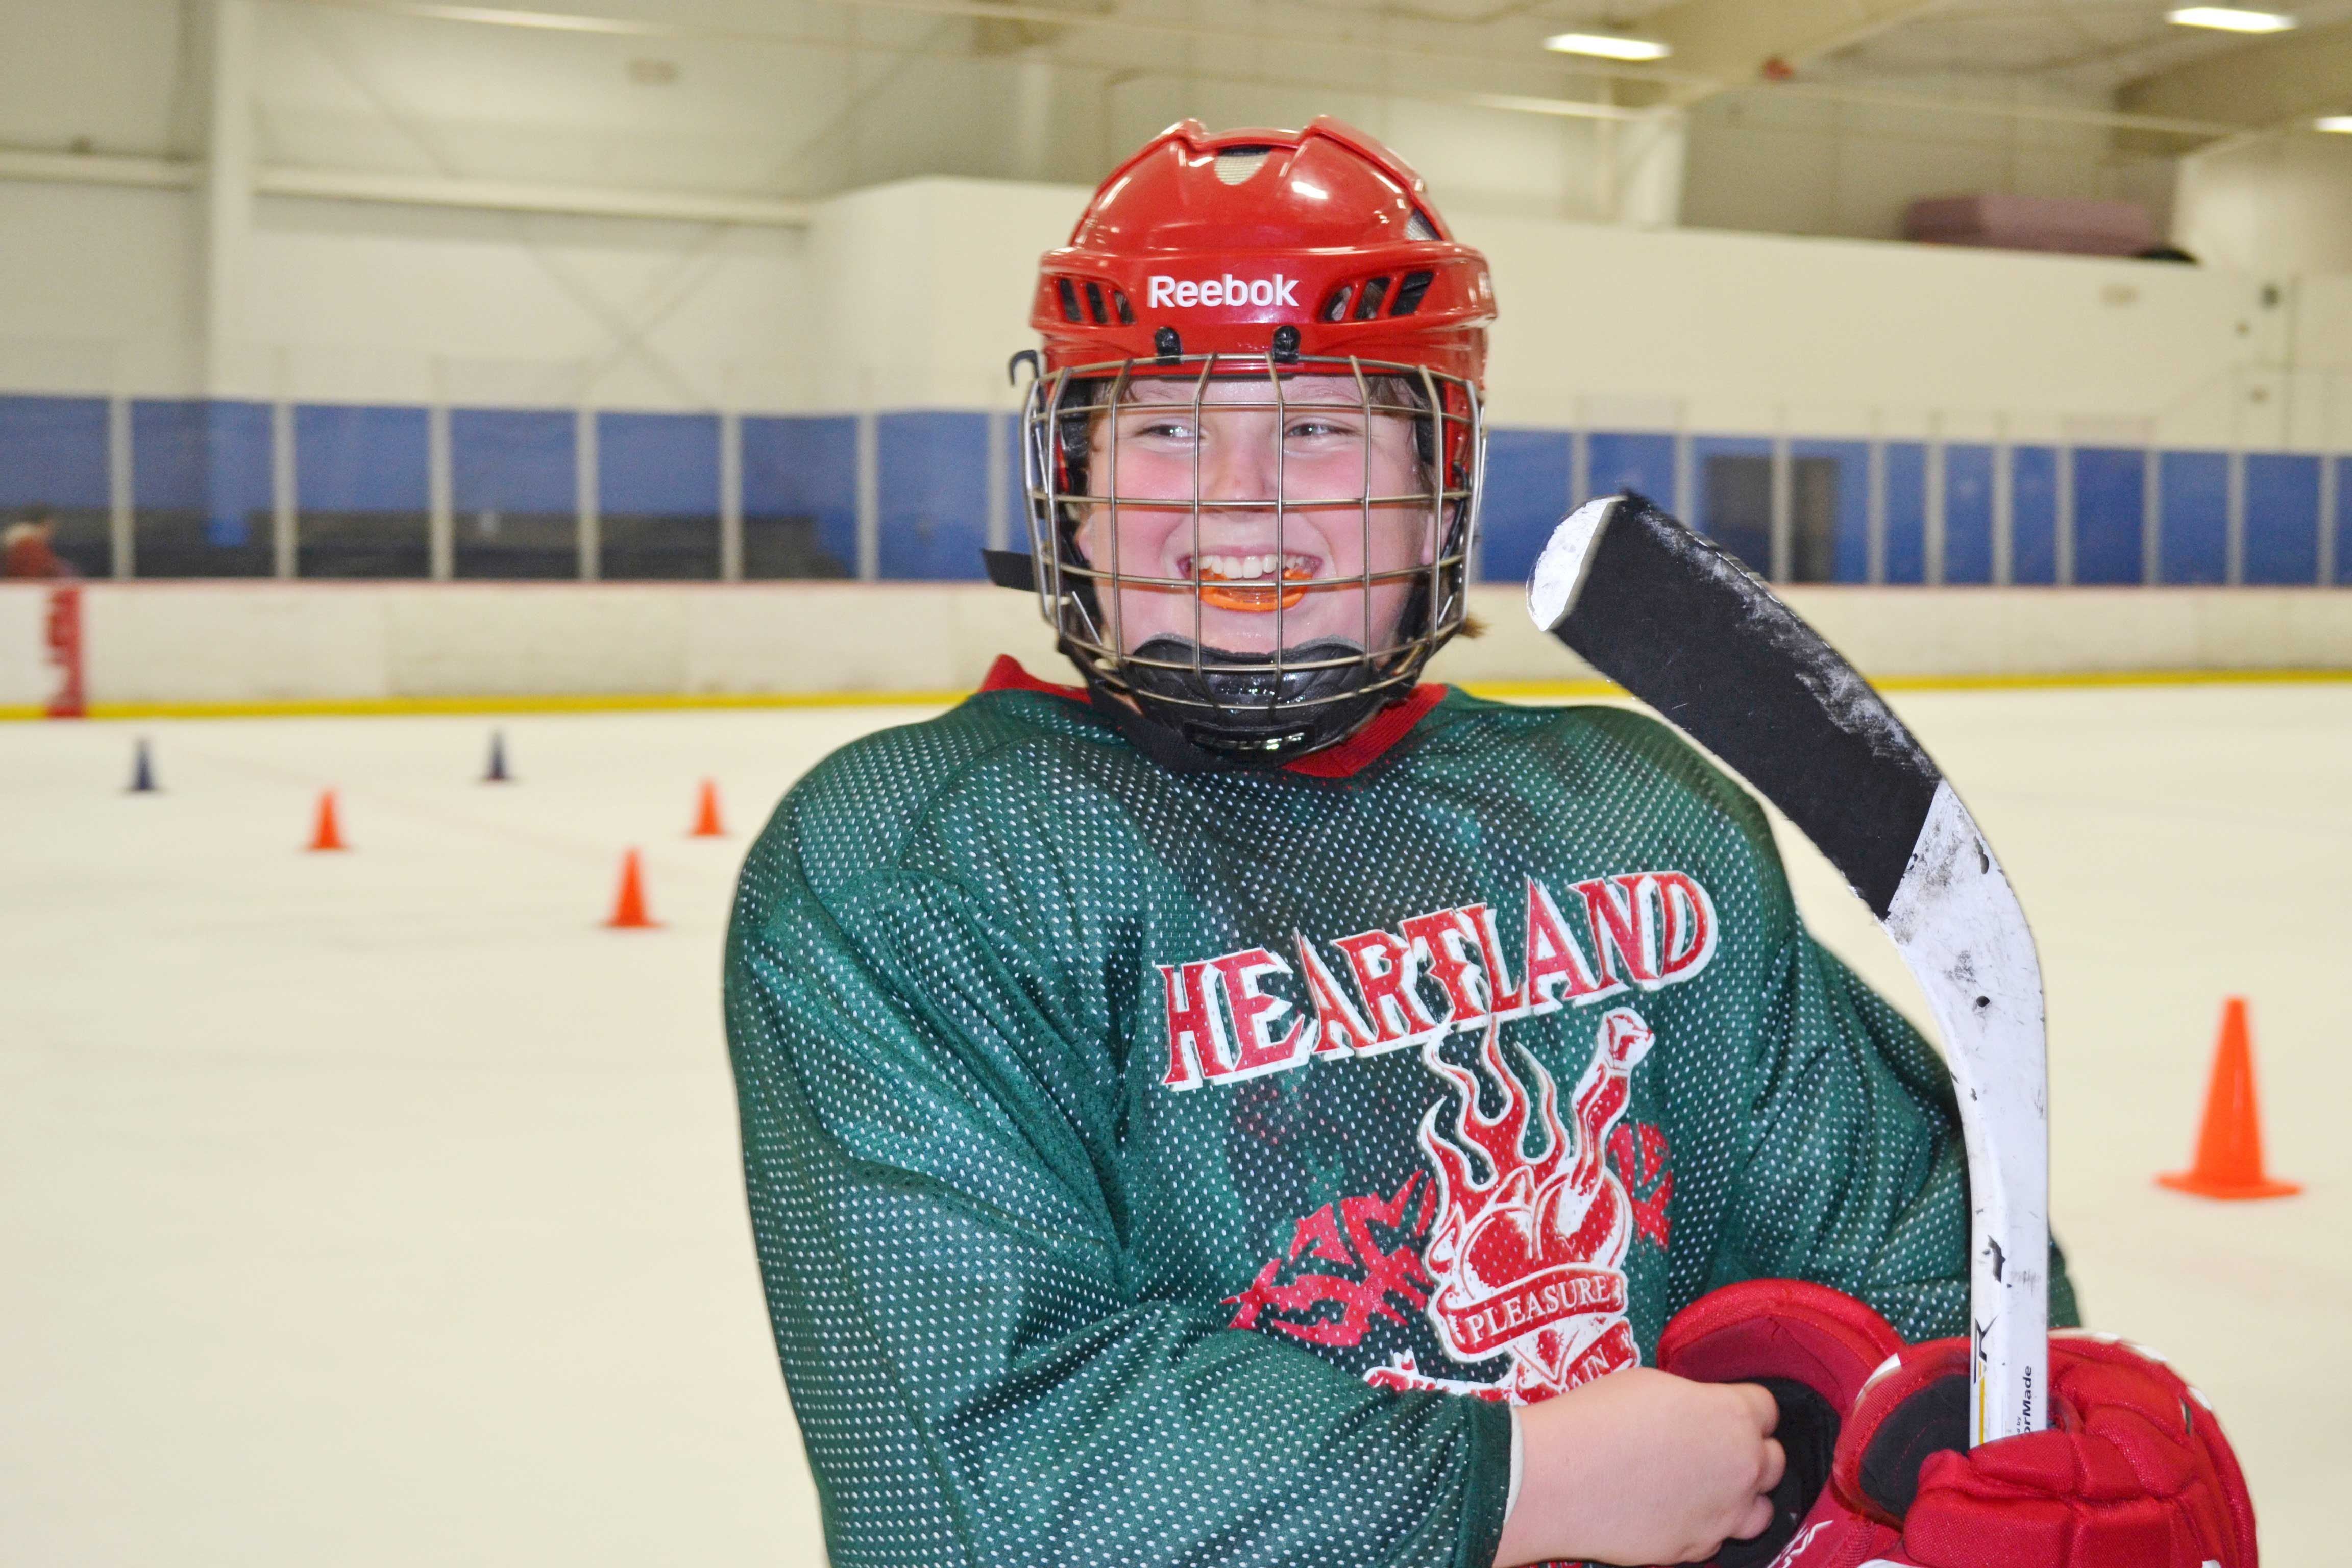 Fbca student connor baily special needs kids private